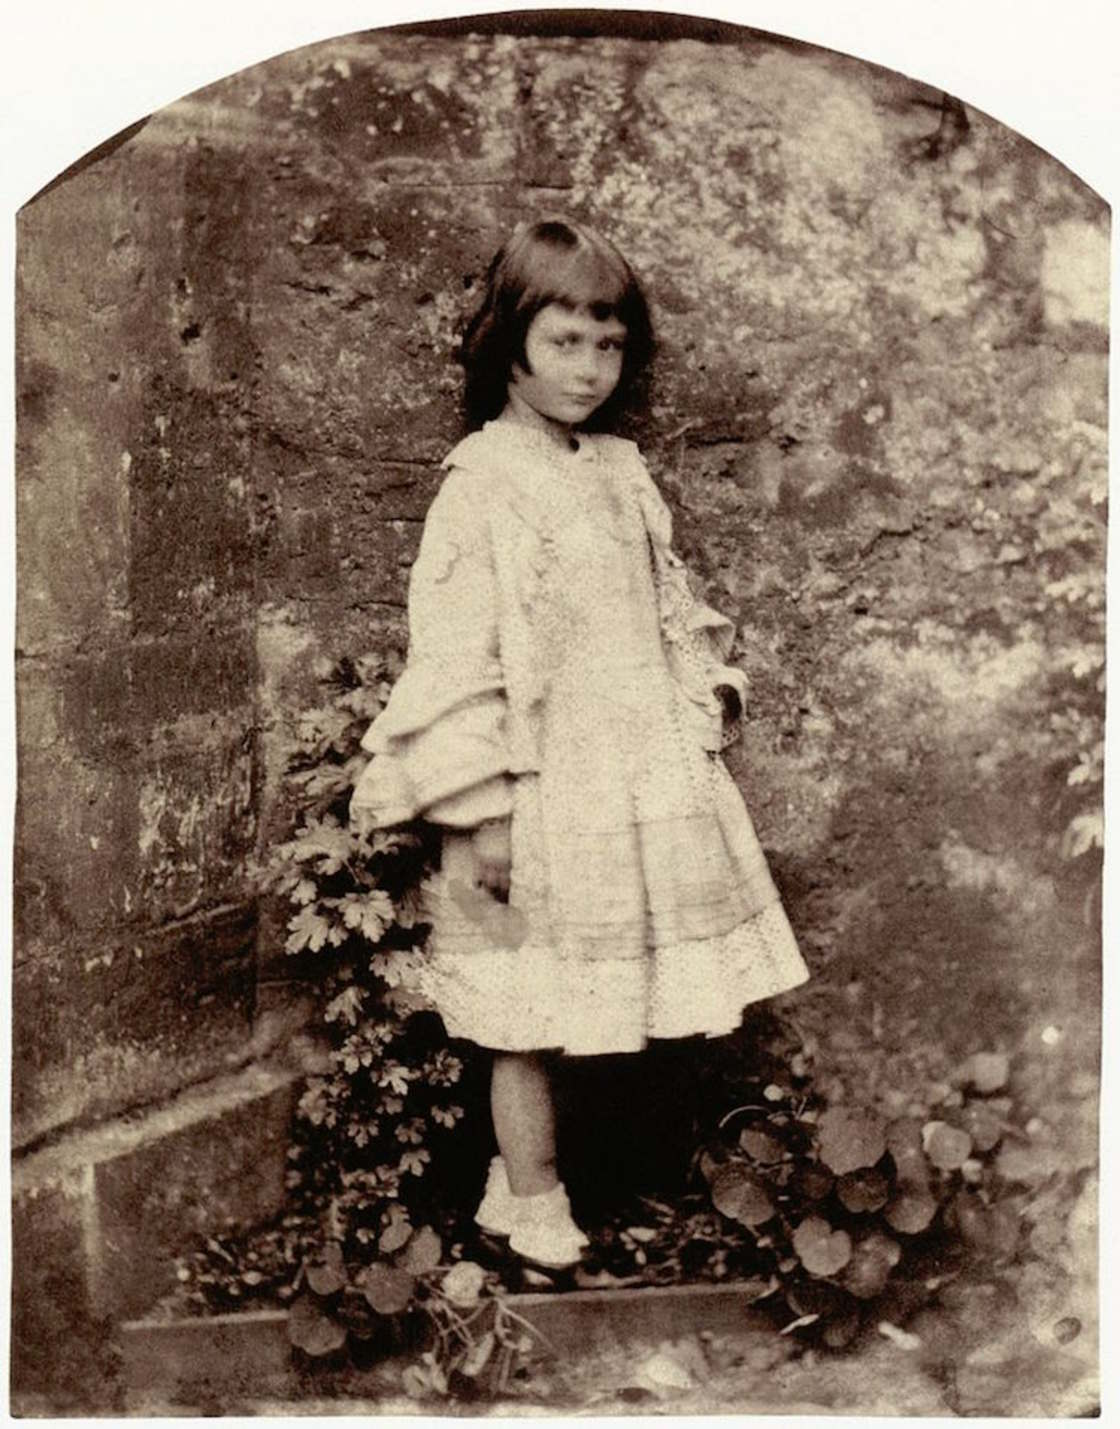 Alice Liddell - The real little girl who inspired Alice in Wonderland